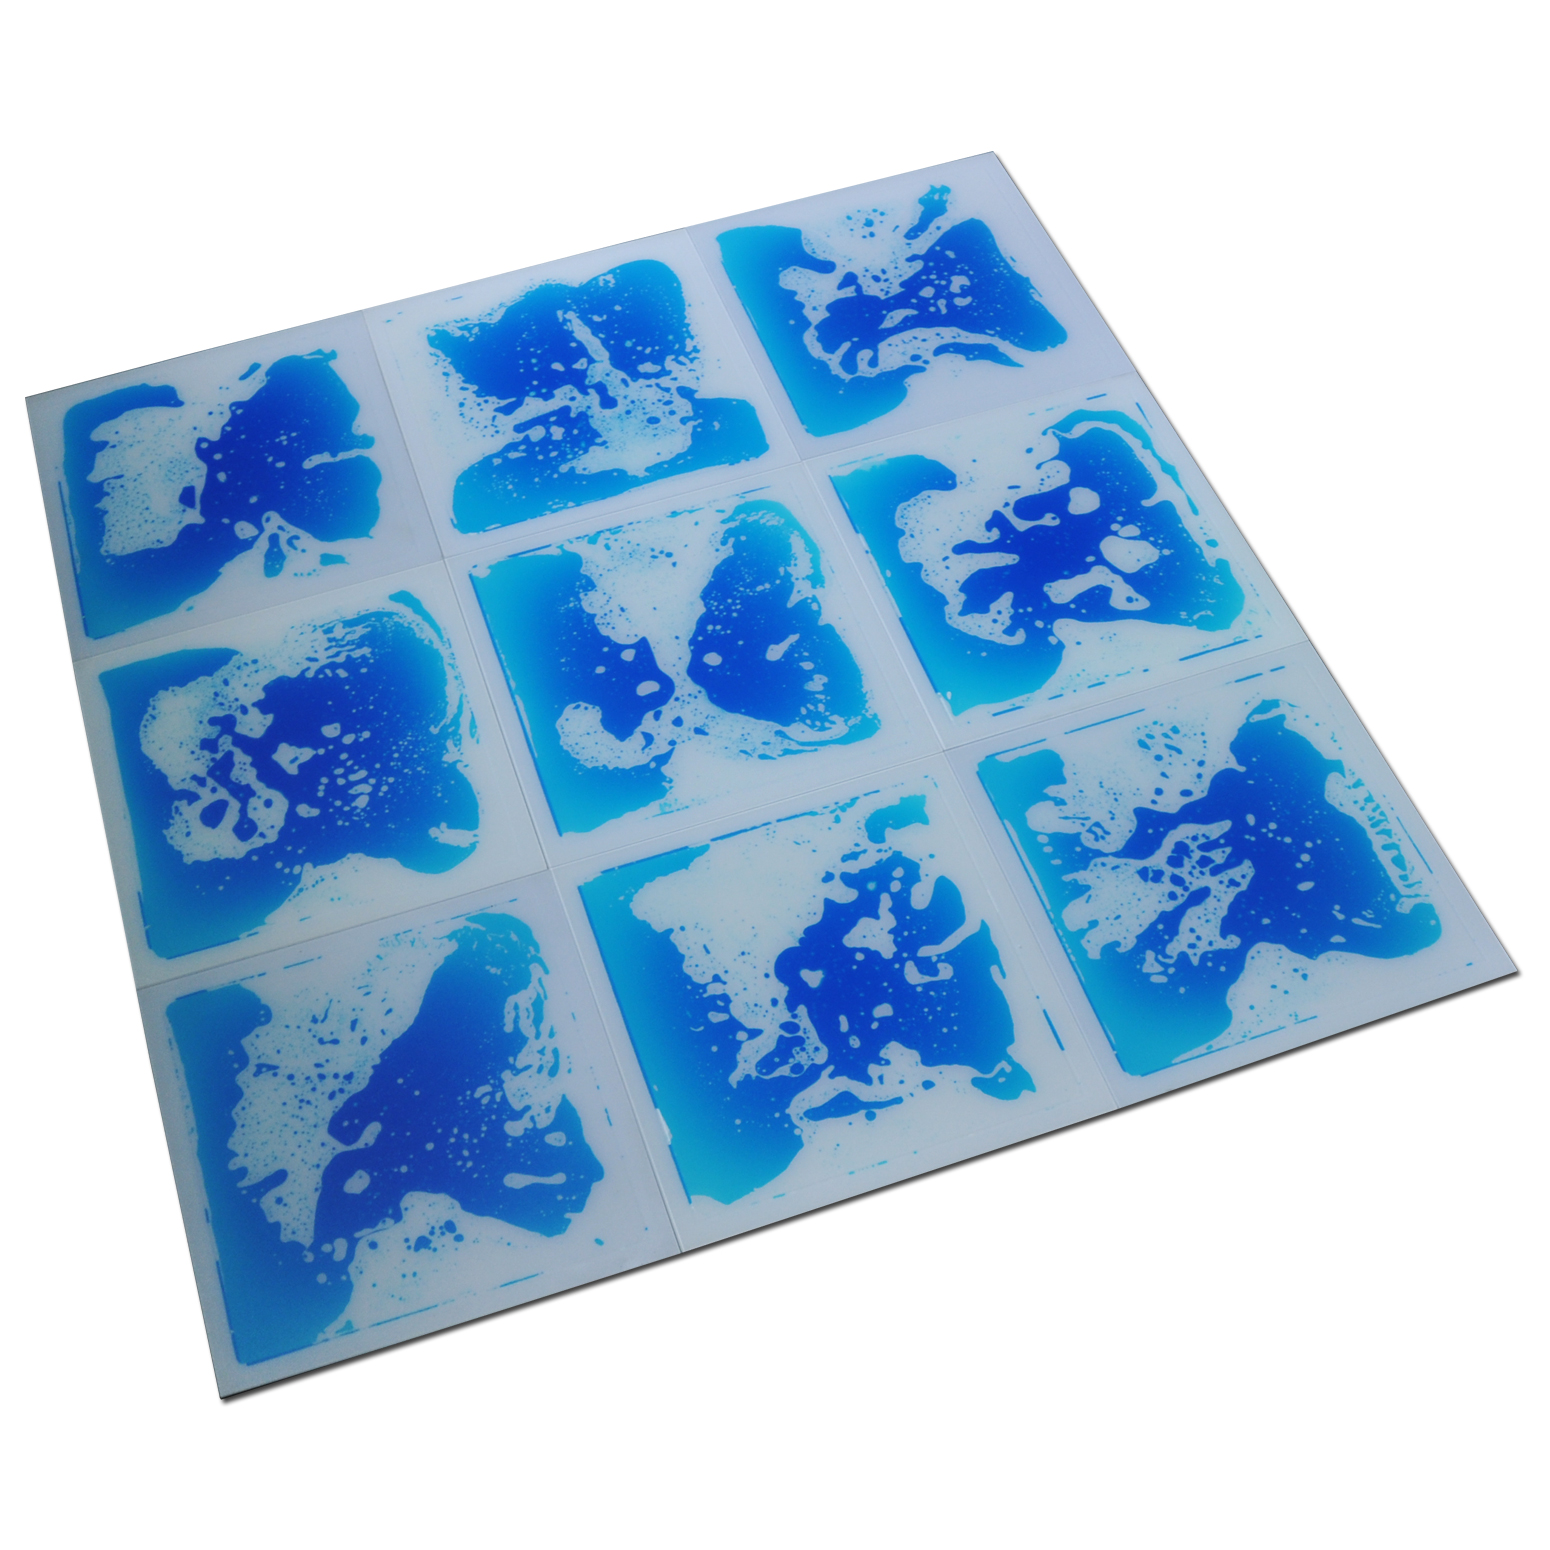 A11303 - Colorful Liquid Floor Tile 12\'\'x12\'\' Home Decor Tiles for ...